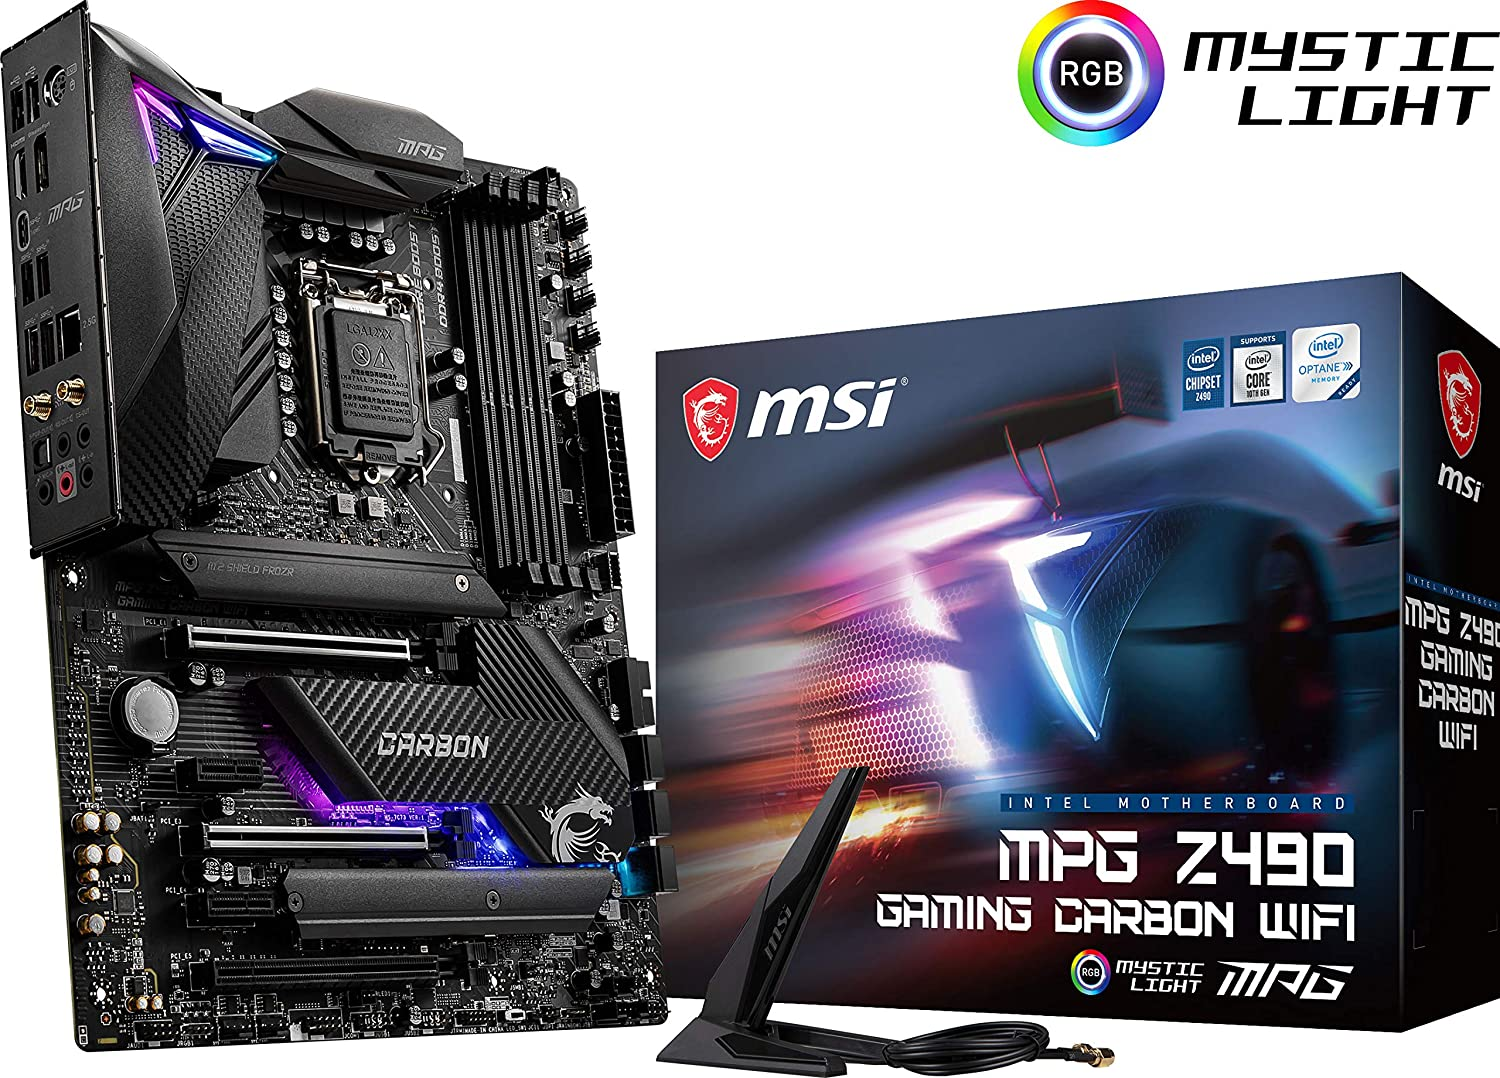 MSI MPG Z490 Gaming Carbon WiFi Gaming Motherboard (ATX, 10th Gen Intel Core, LGA 1200 Socket, DDR4, SLI/CF, Dual M.2 Slots, USB 3.2 Gen 2, Wi-Fi 6, DP/HDMI, Mystic Light RGB)